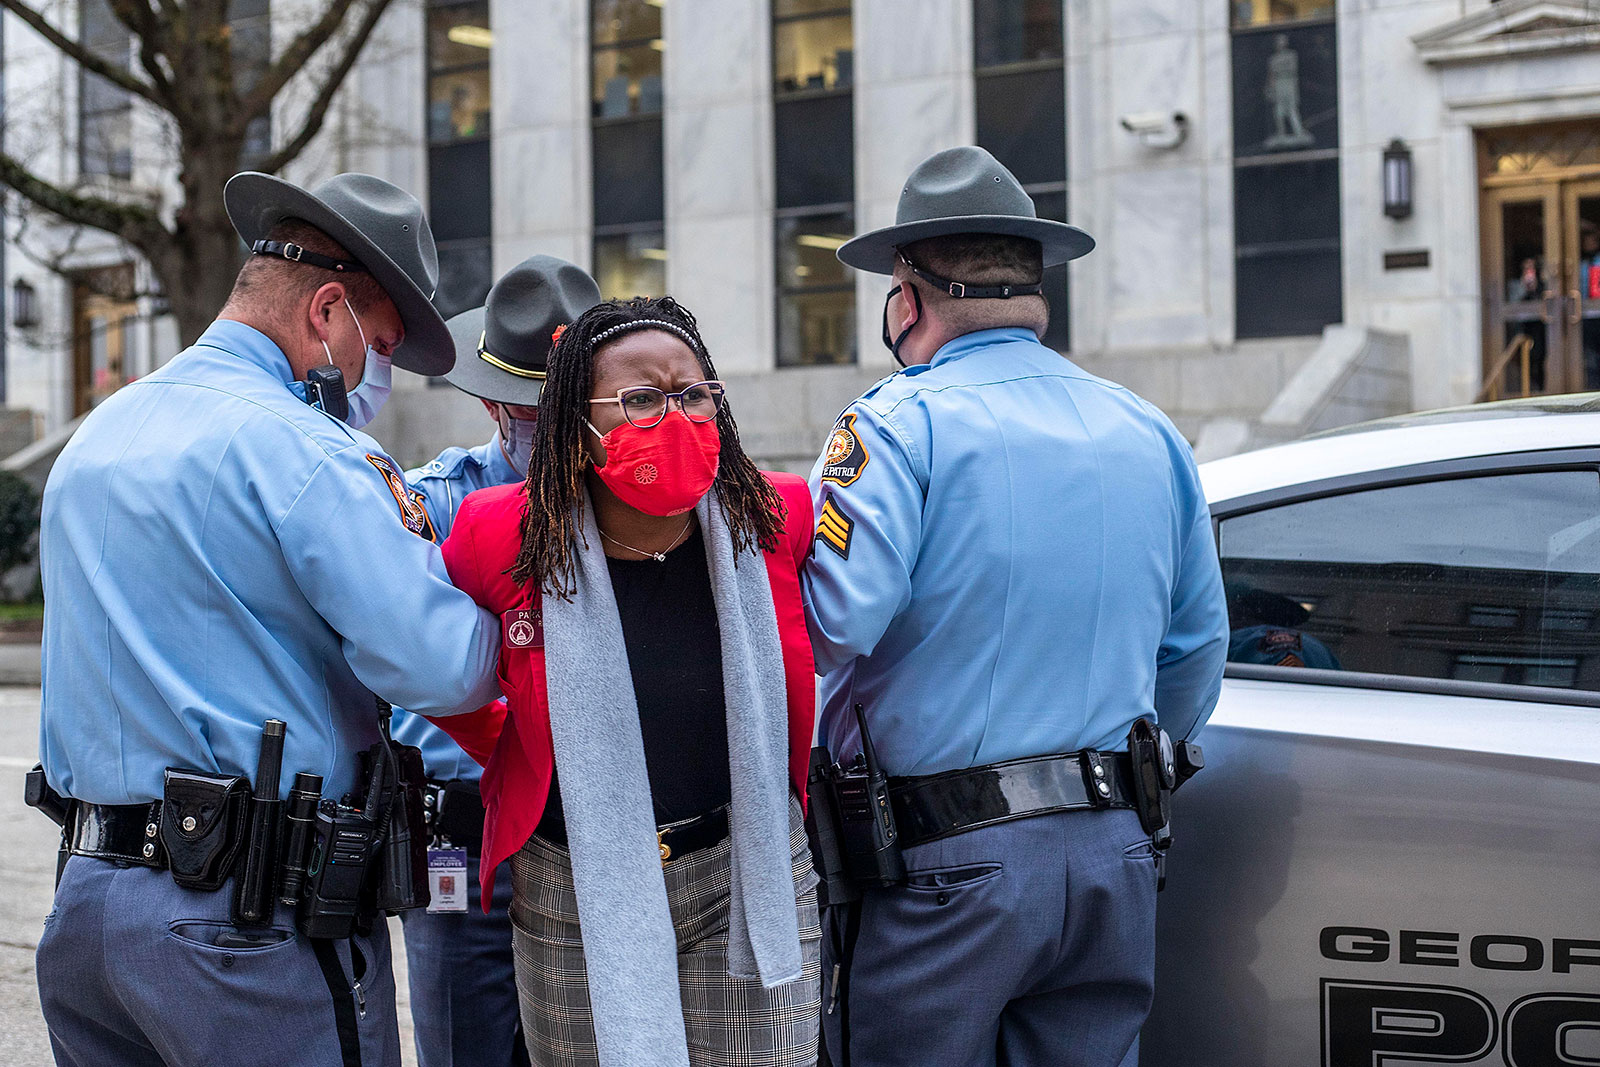 Georgia State Representative Park Cannon is placed into the back of a patrol car by Georgia state troopers after being arrested at the Georgia Capitol in Atlanta, on Thursday.